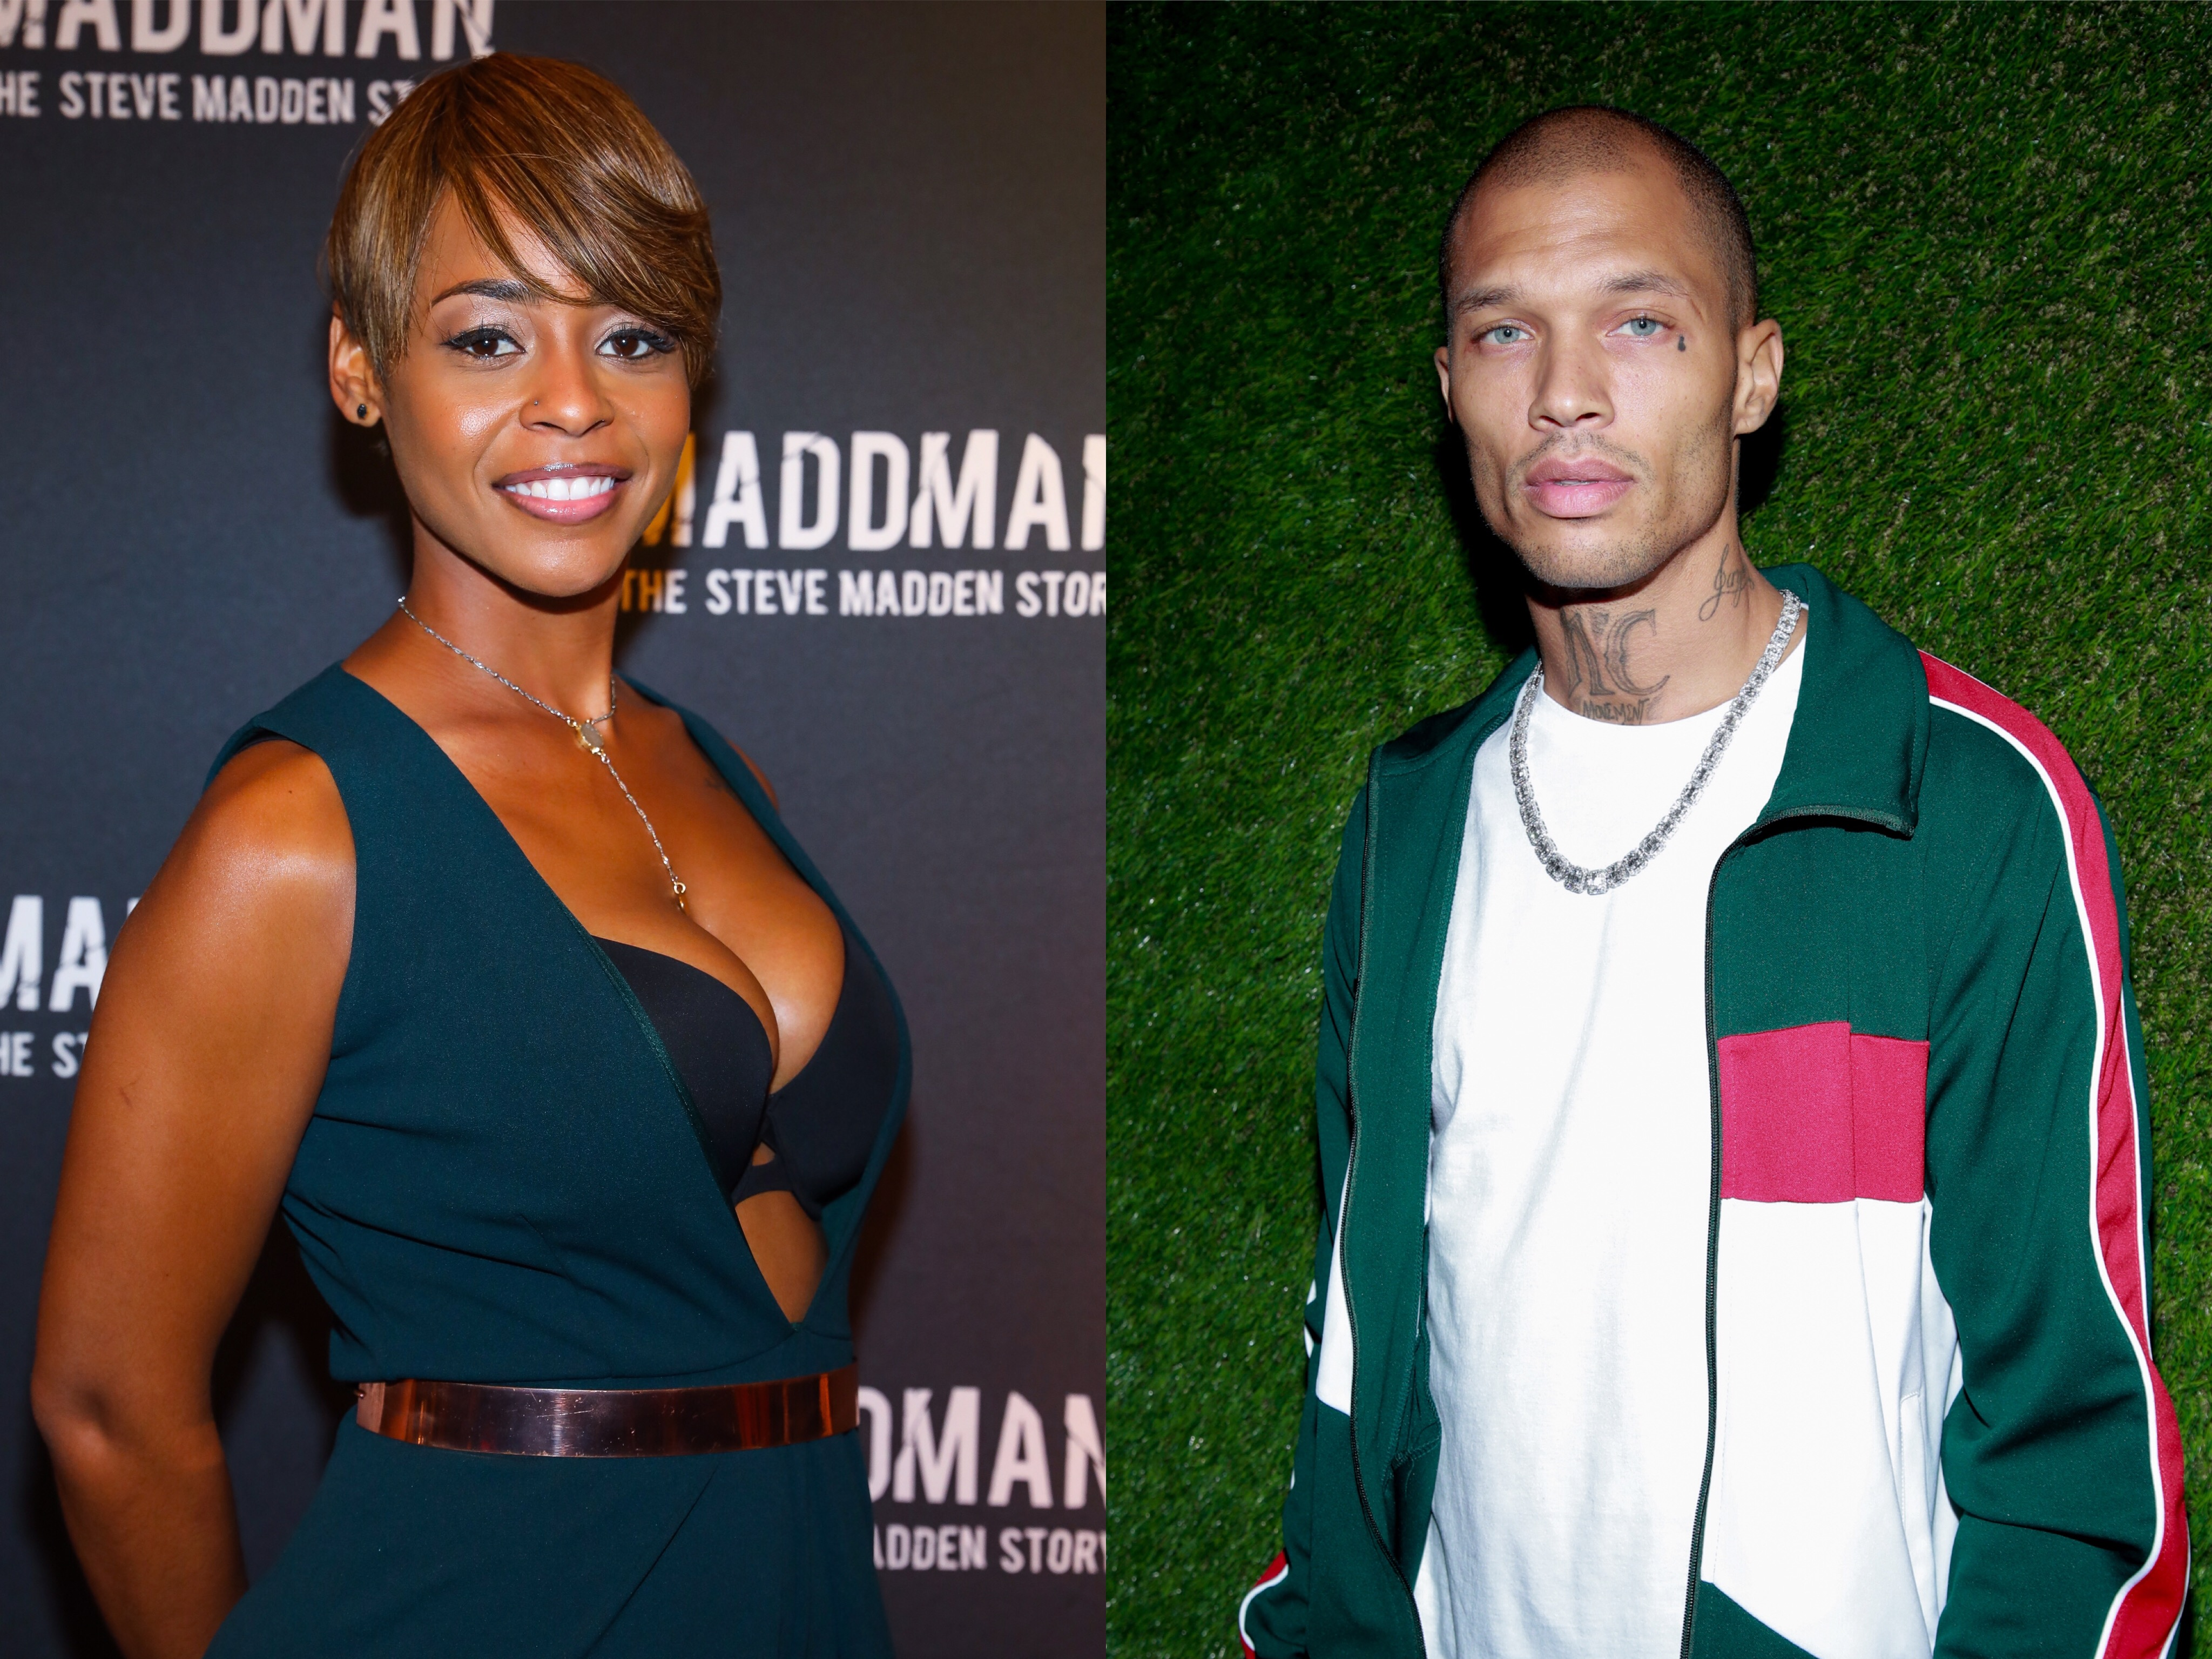 Jeremy Meeks was spotted out in LA with actress Erica Peeples as they headed to Catch LA. This comes after his fianceé was spotted with another man.